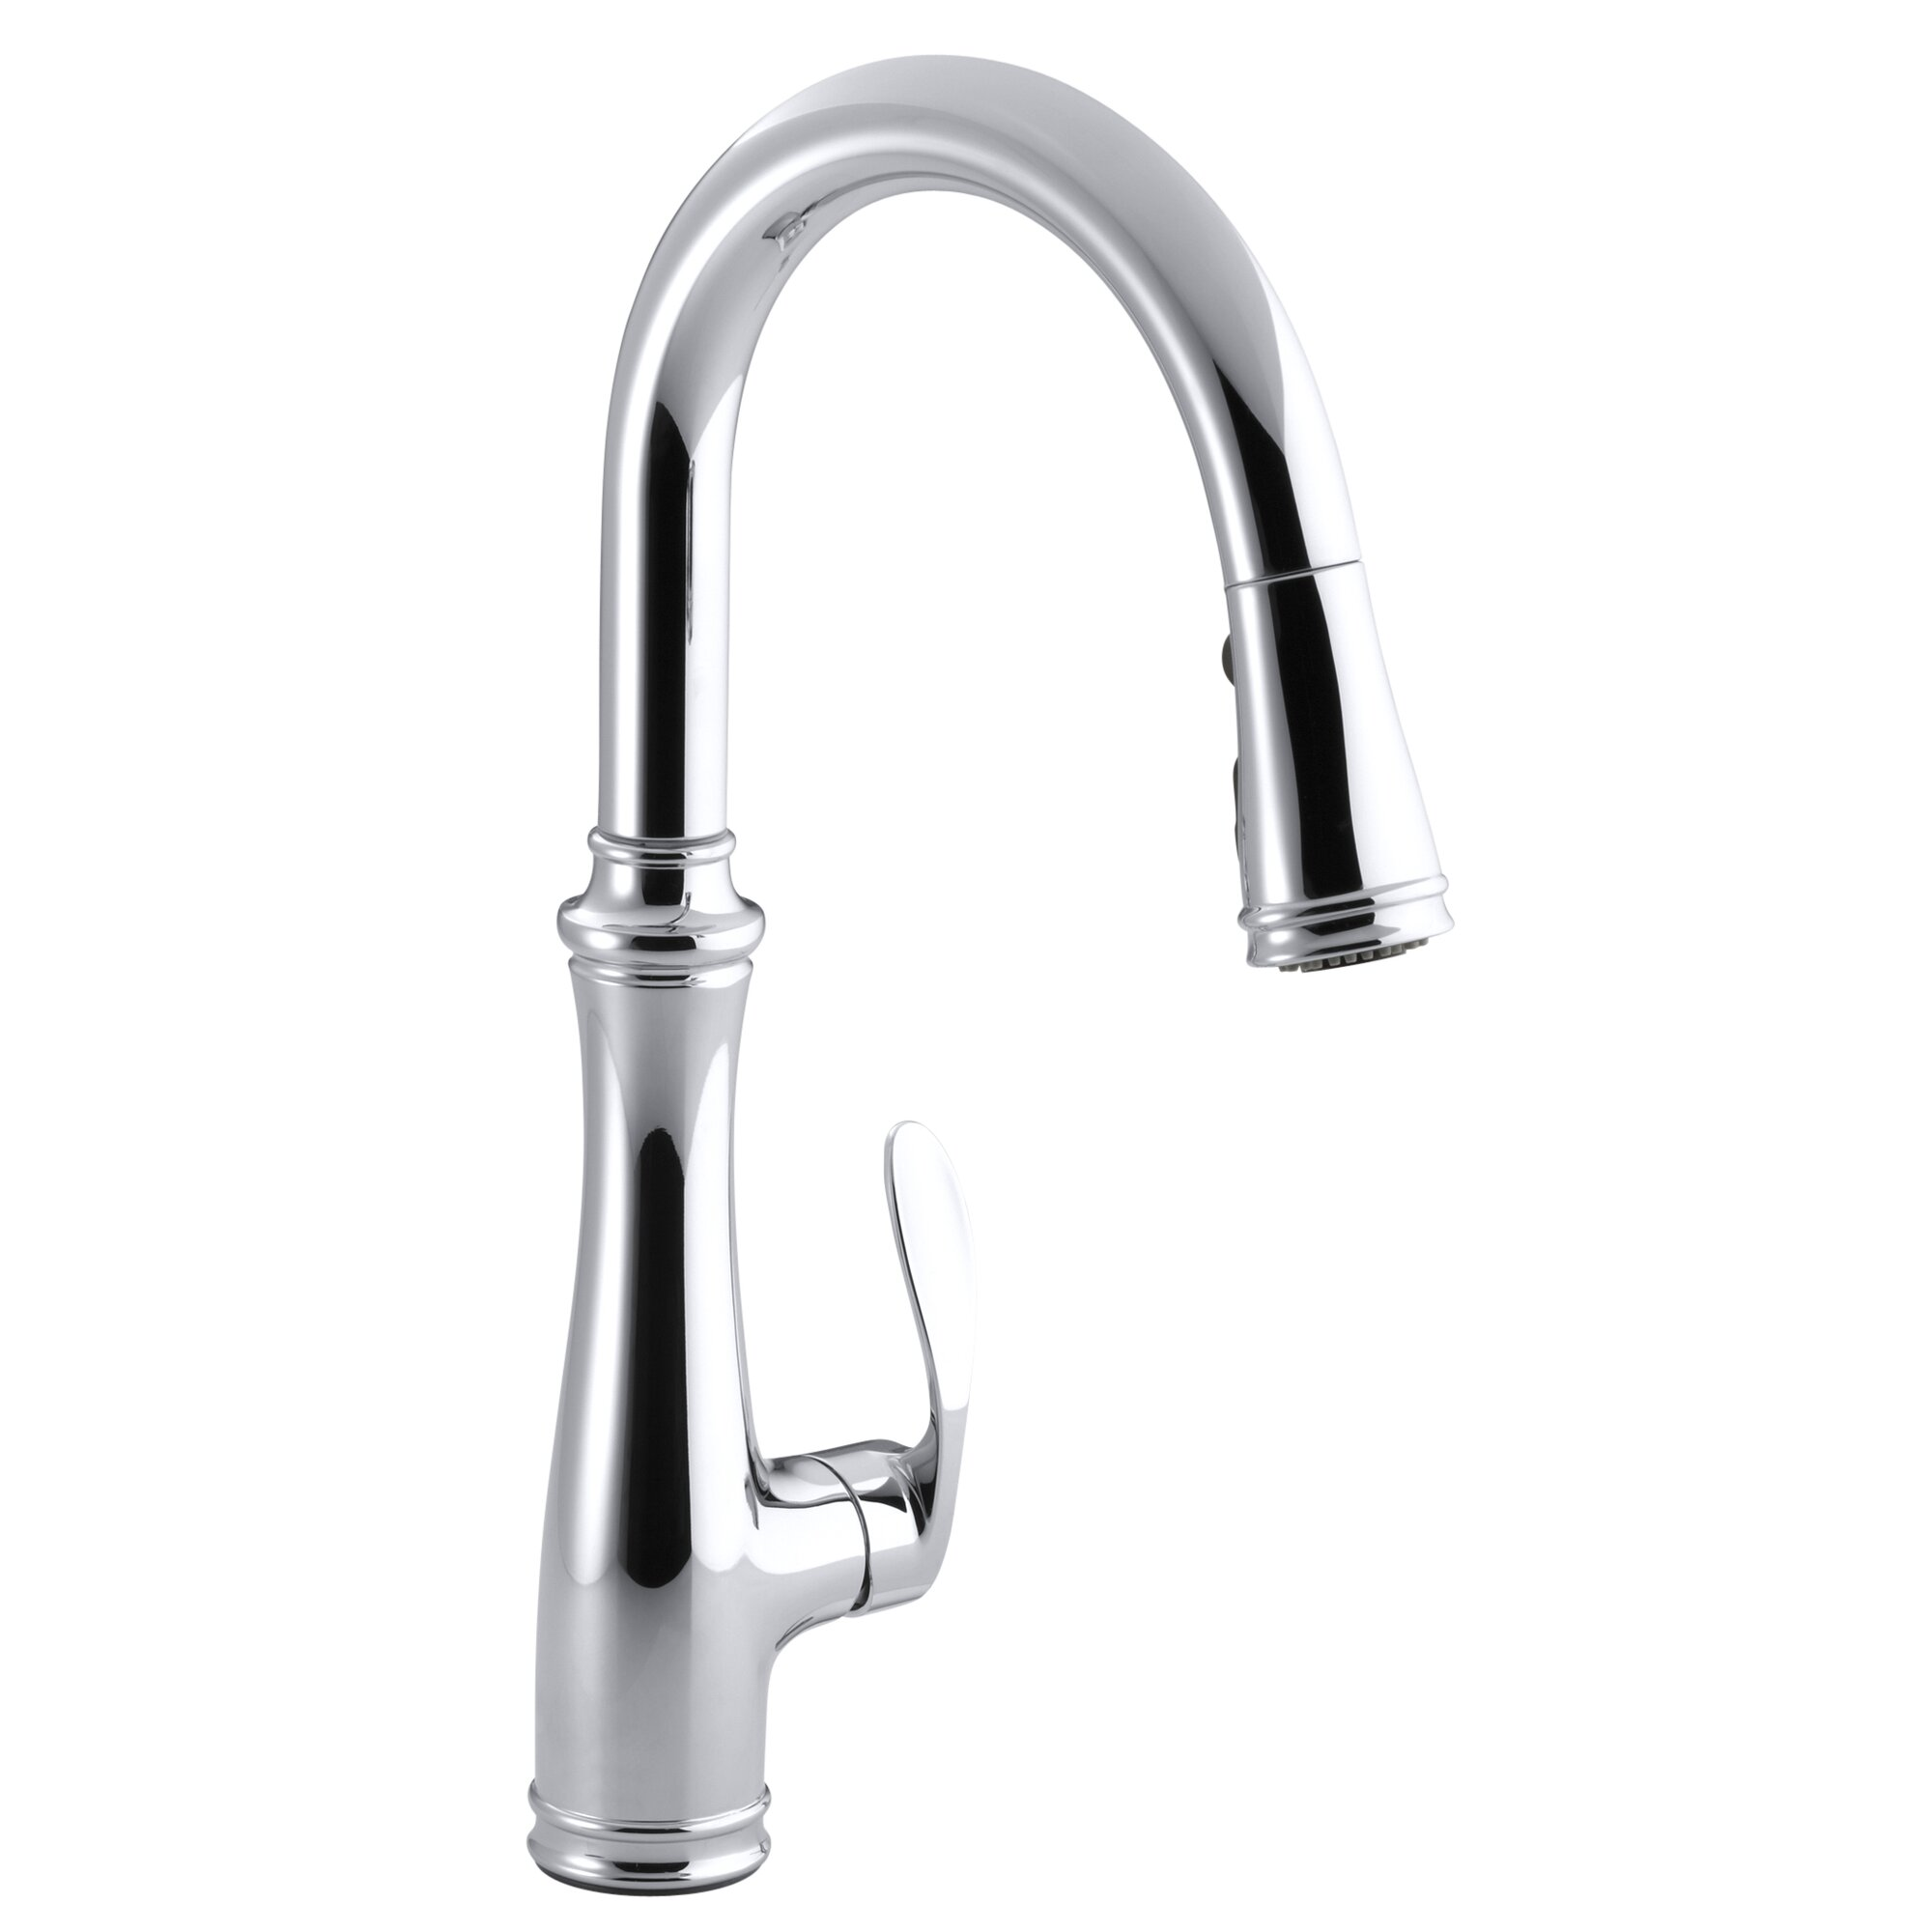 Bellera Kitchen Sink Faucet With 16 3 4 Pull Down Spout